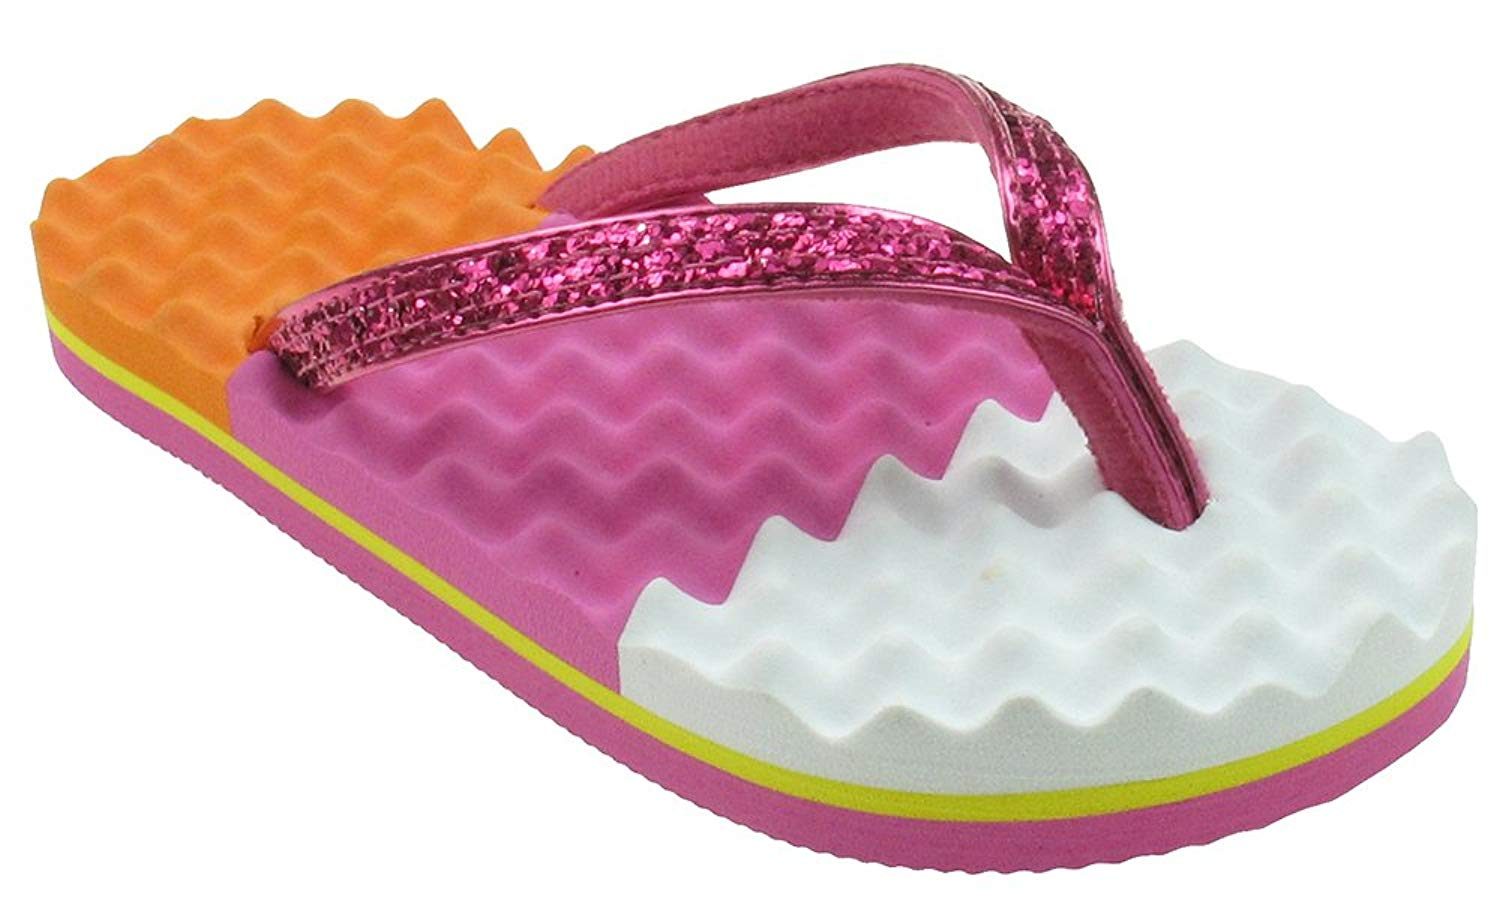 Capelli New York Metallic Faux Leather Thong on Colorblocked Egg Crate Textured Girls Flip Flops